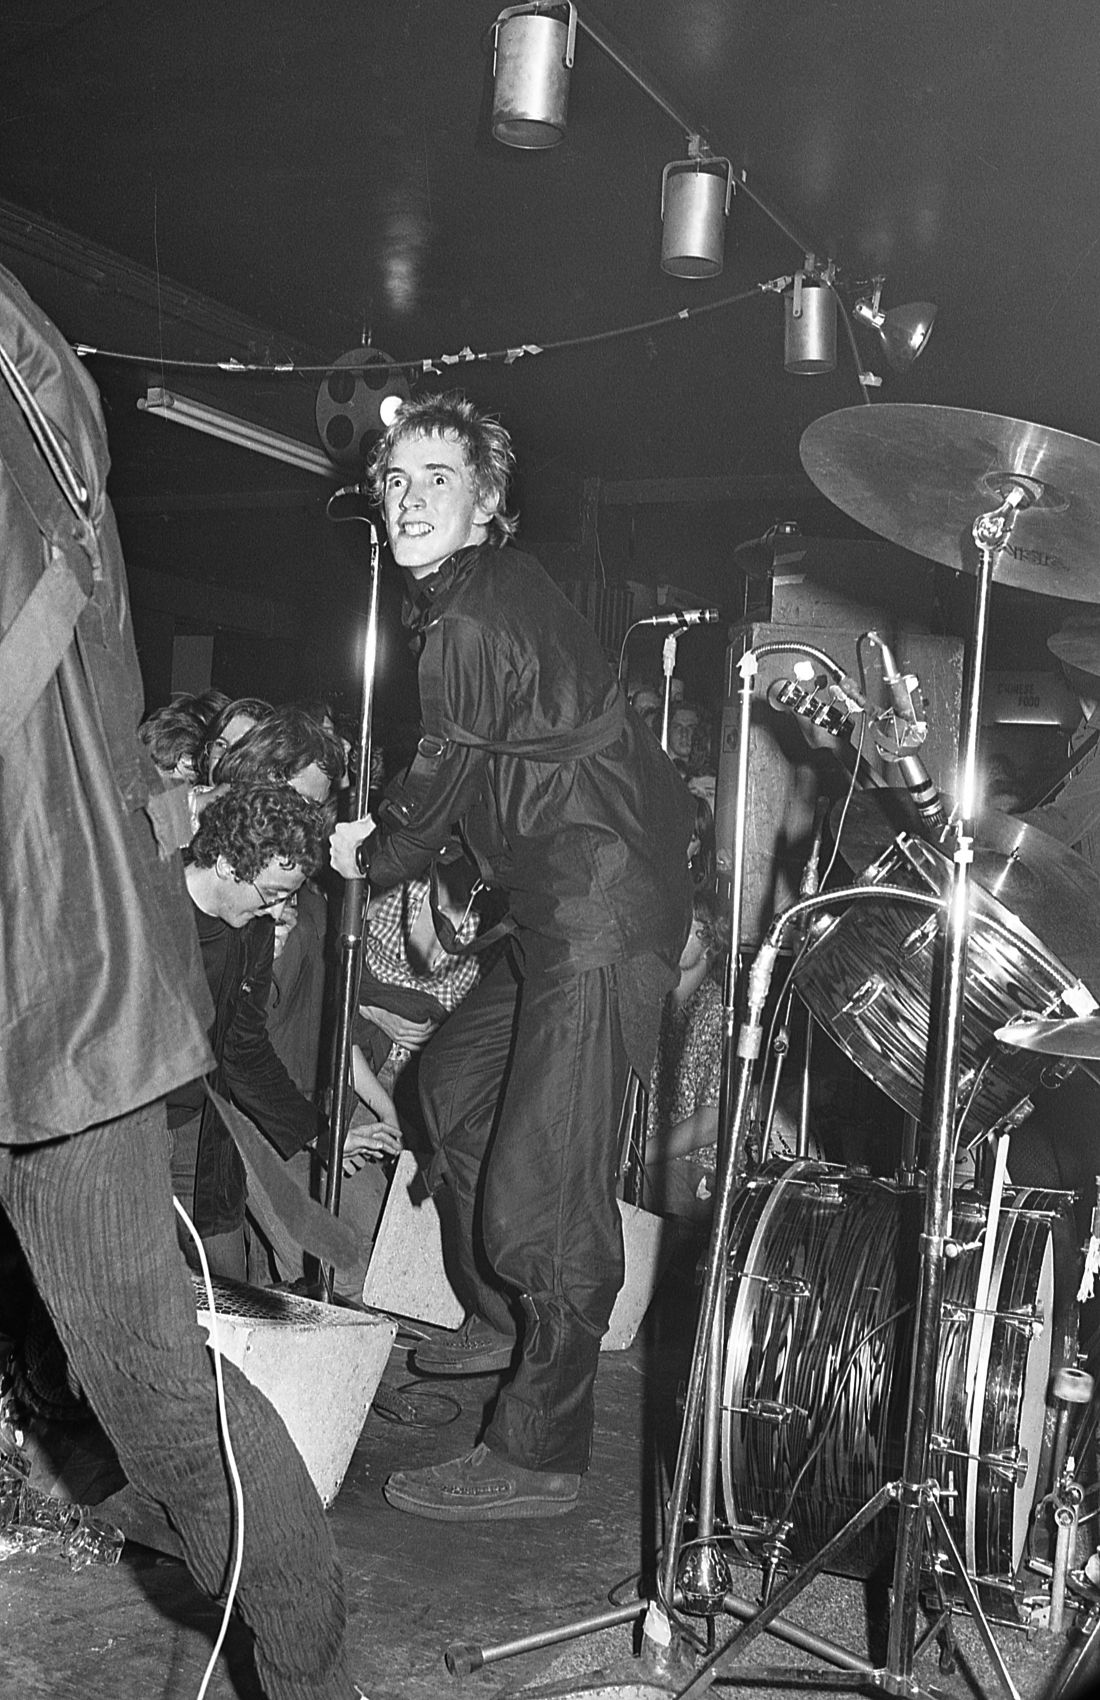 John Lydon at the 1976 Punk Special by Barry Plummer